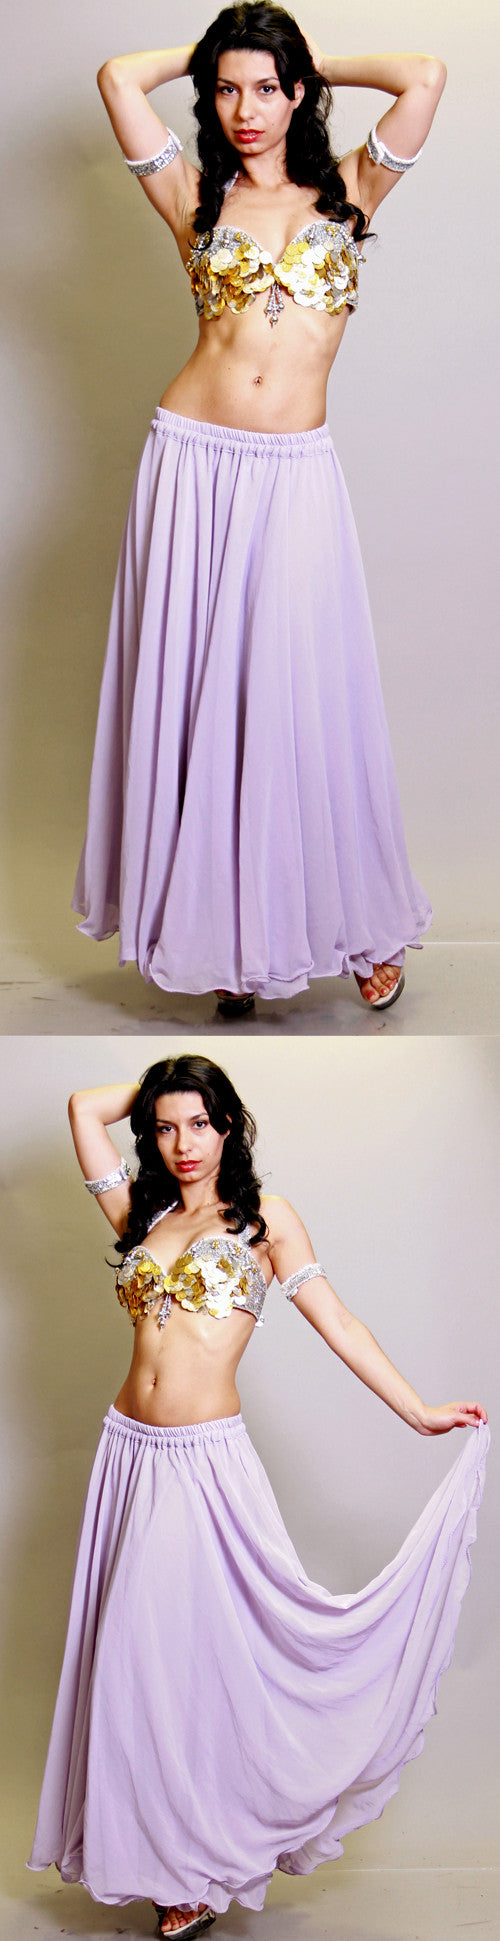 Light purple Double Chiffon Skirt